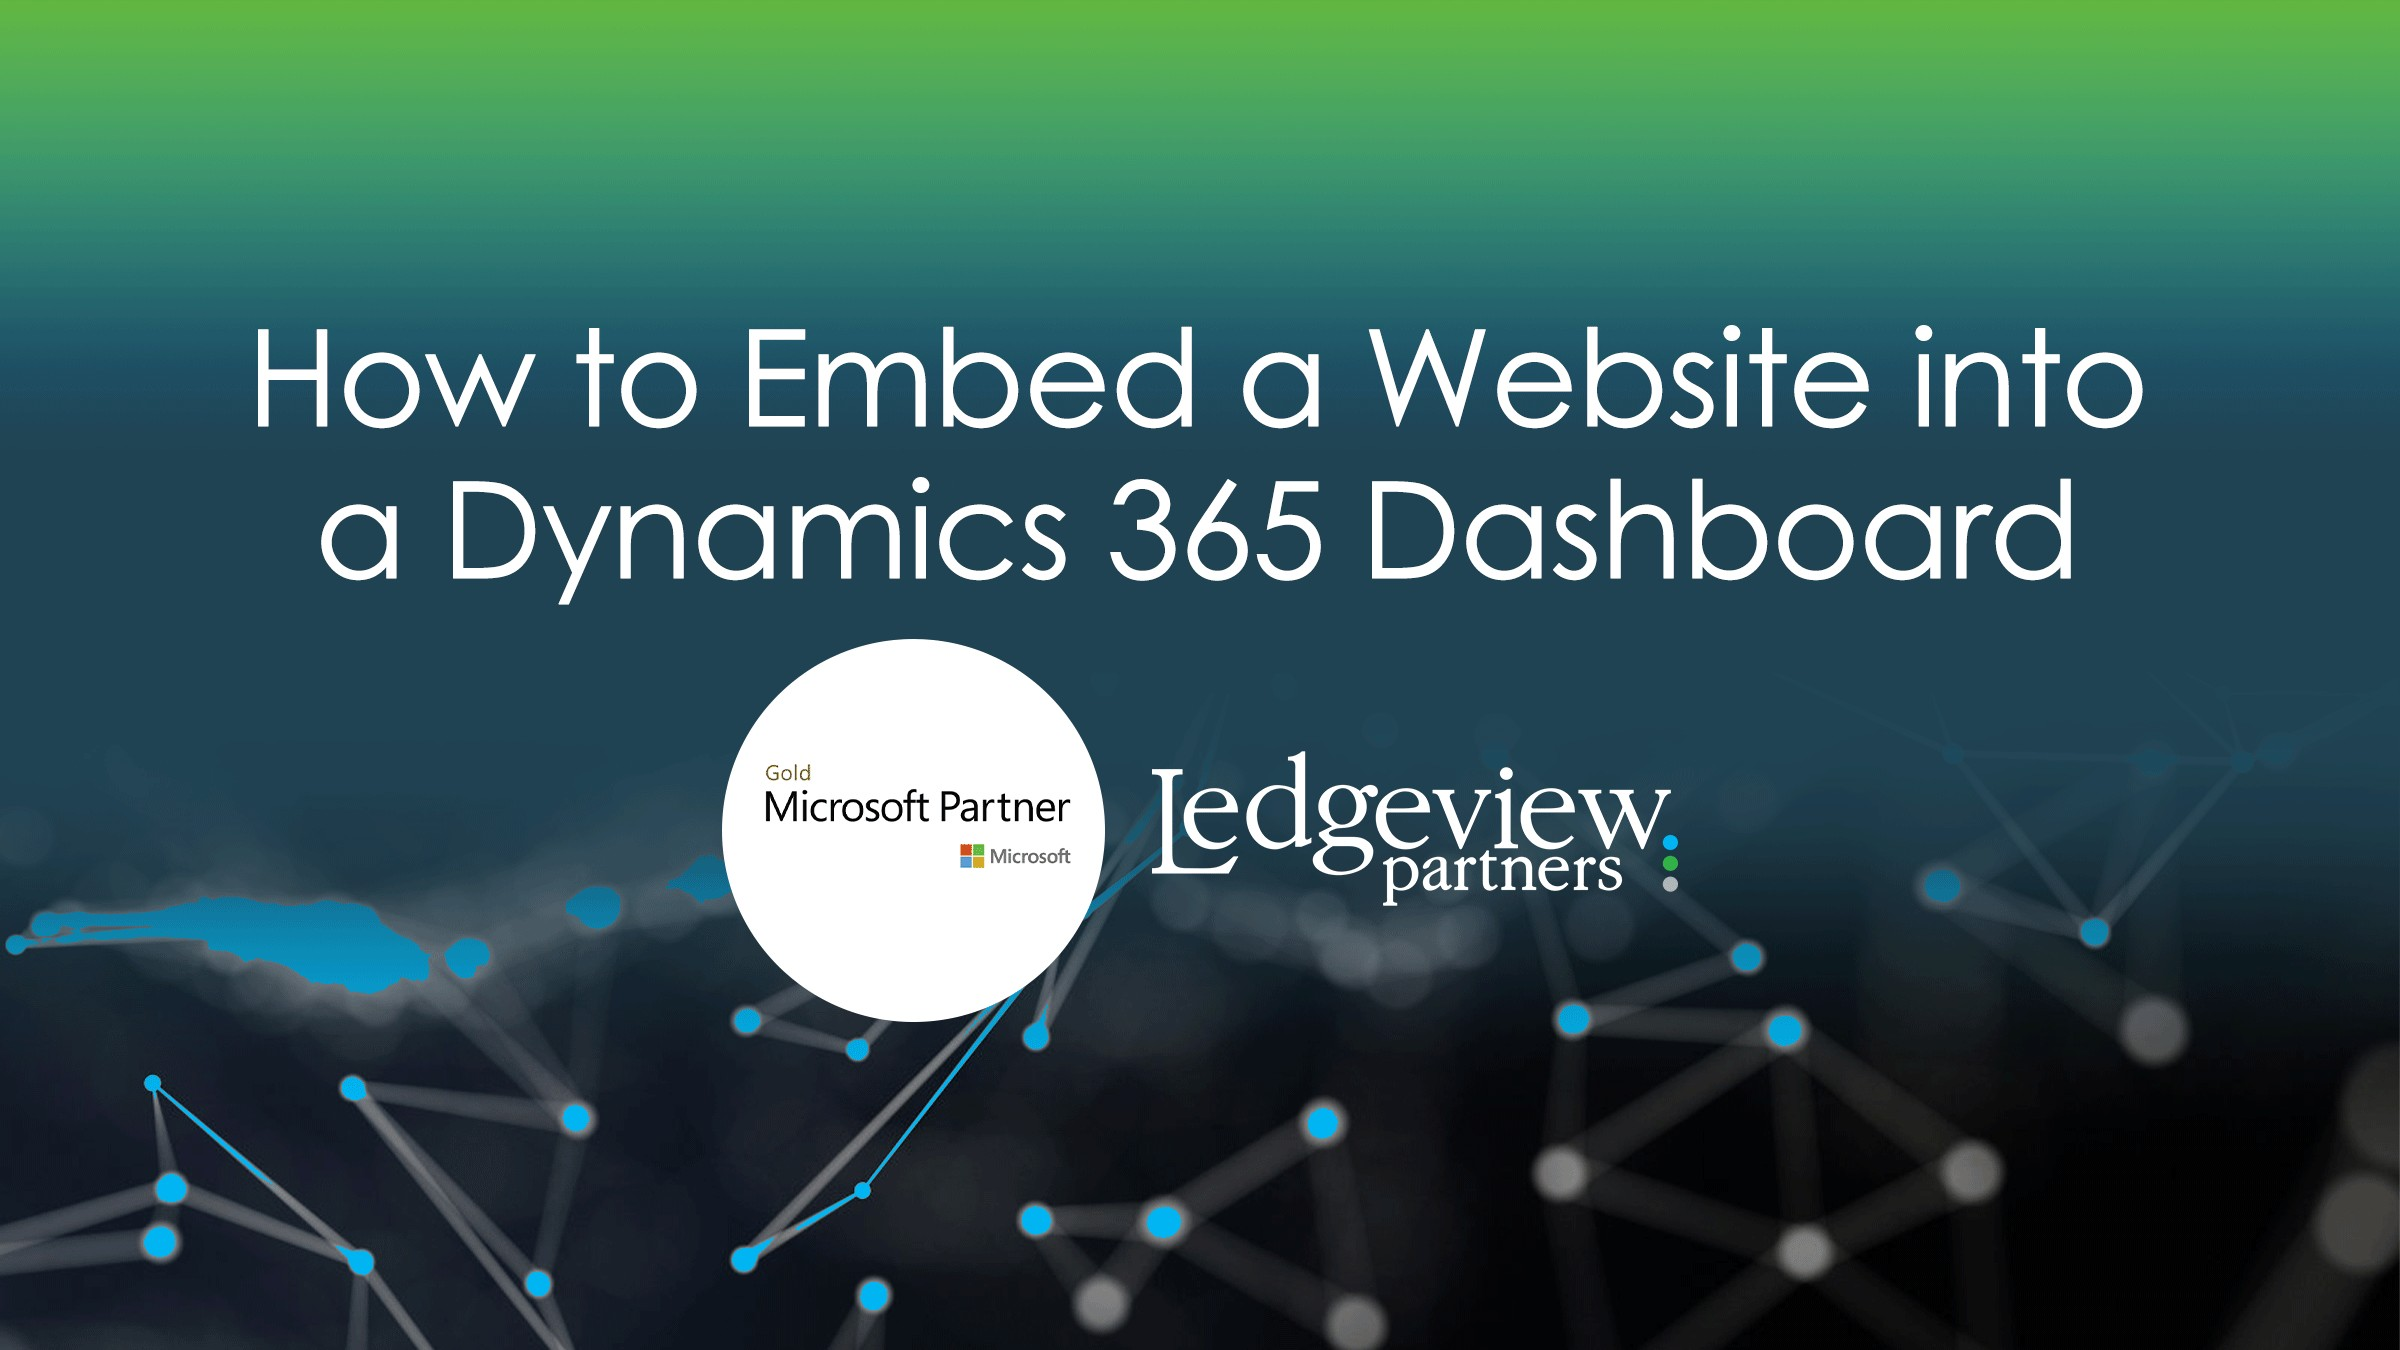 How to Embed a Website into a Microsoft Dynamics 365 Dashboard